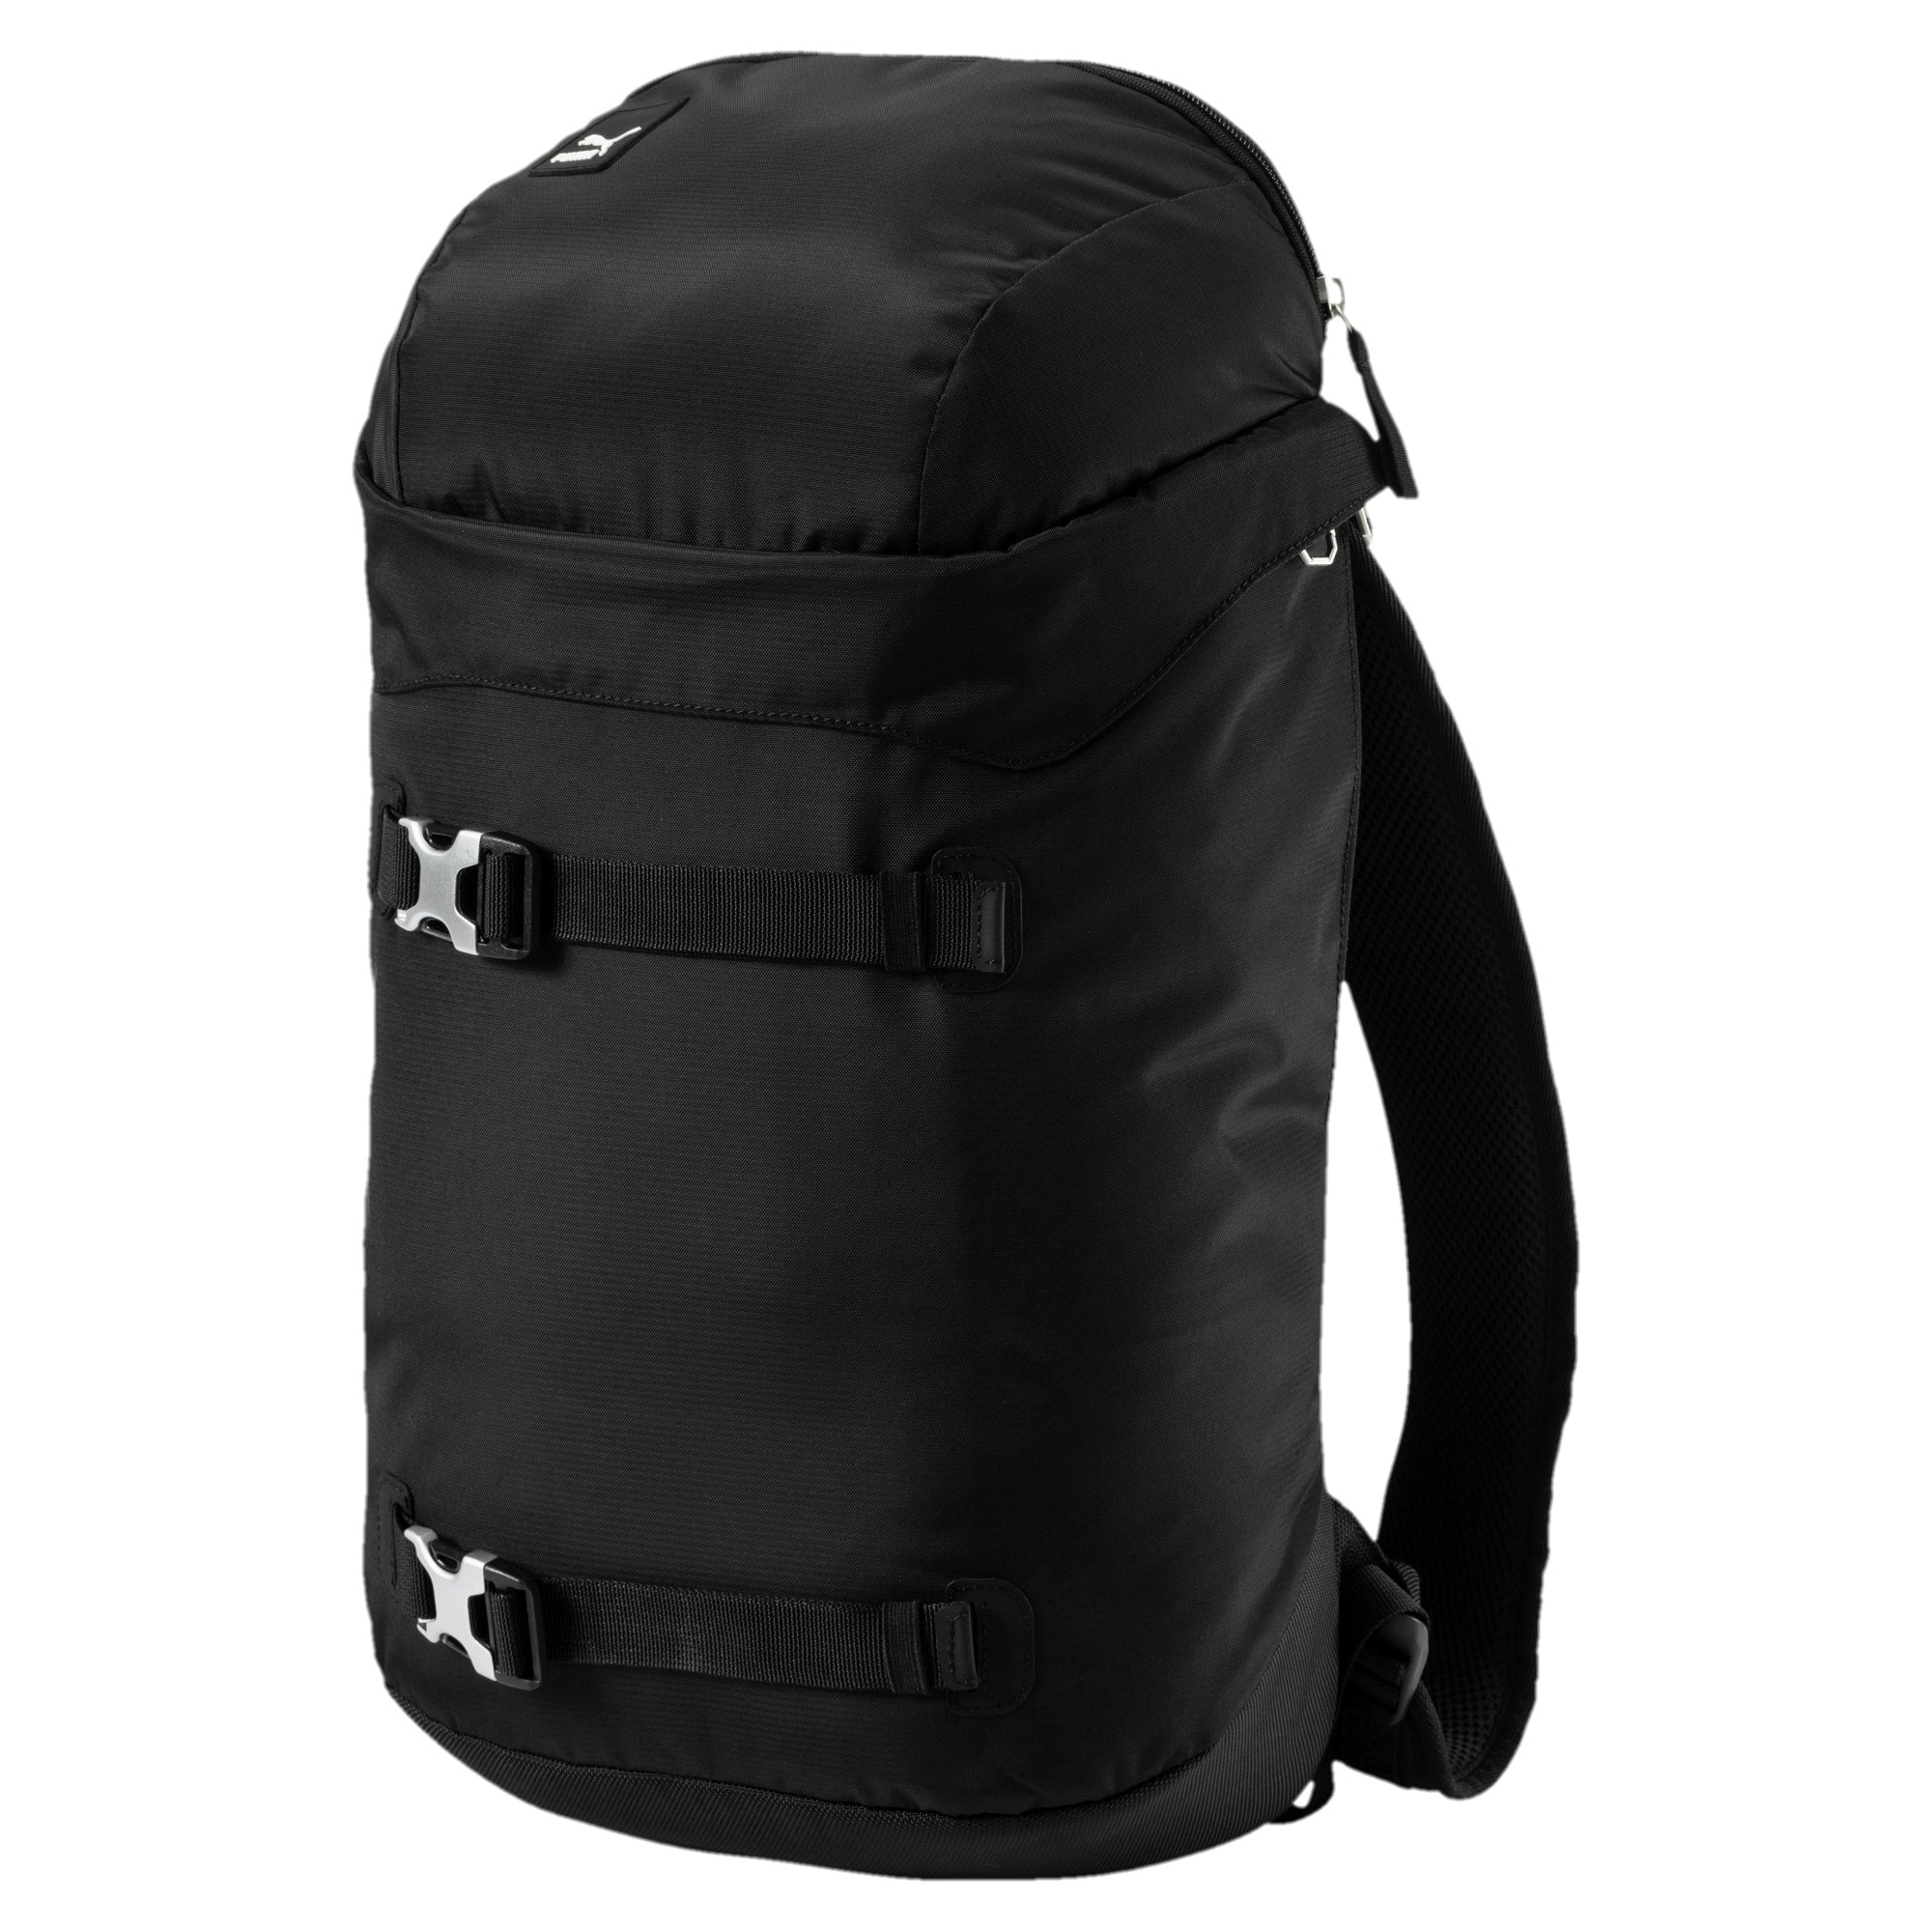 Thumbnail 1 of Evo Blaze Backpack, Puma Black, medium-IND